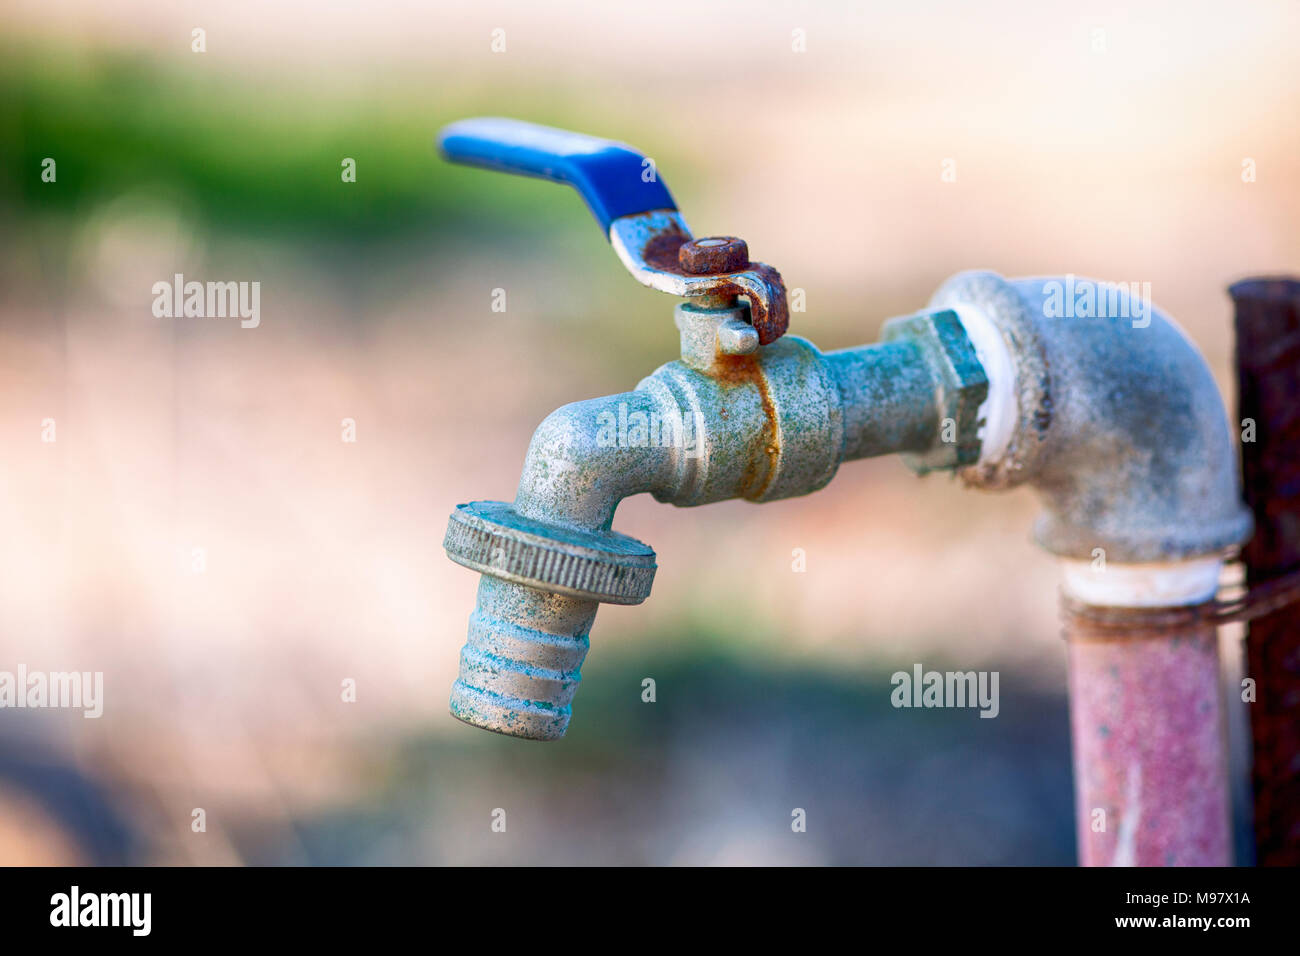 Garden water tap. Close-up. - Stock Image